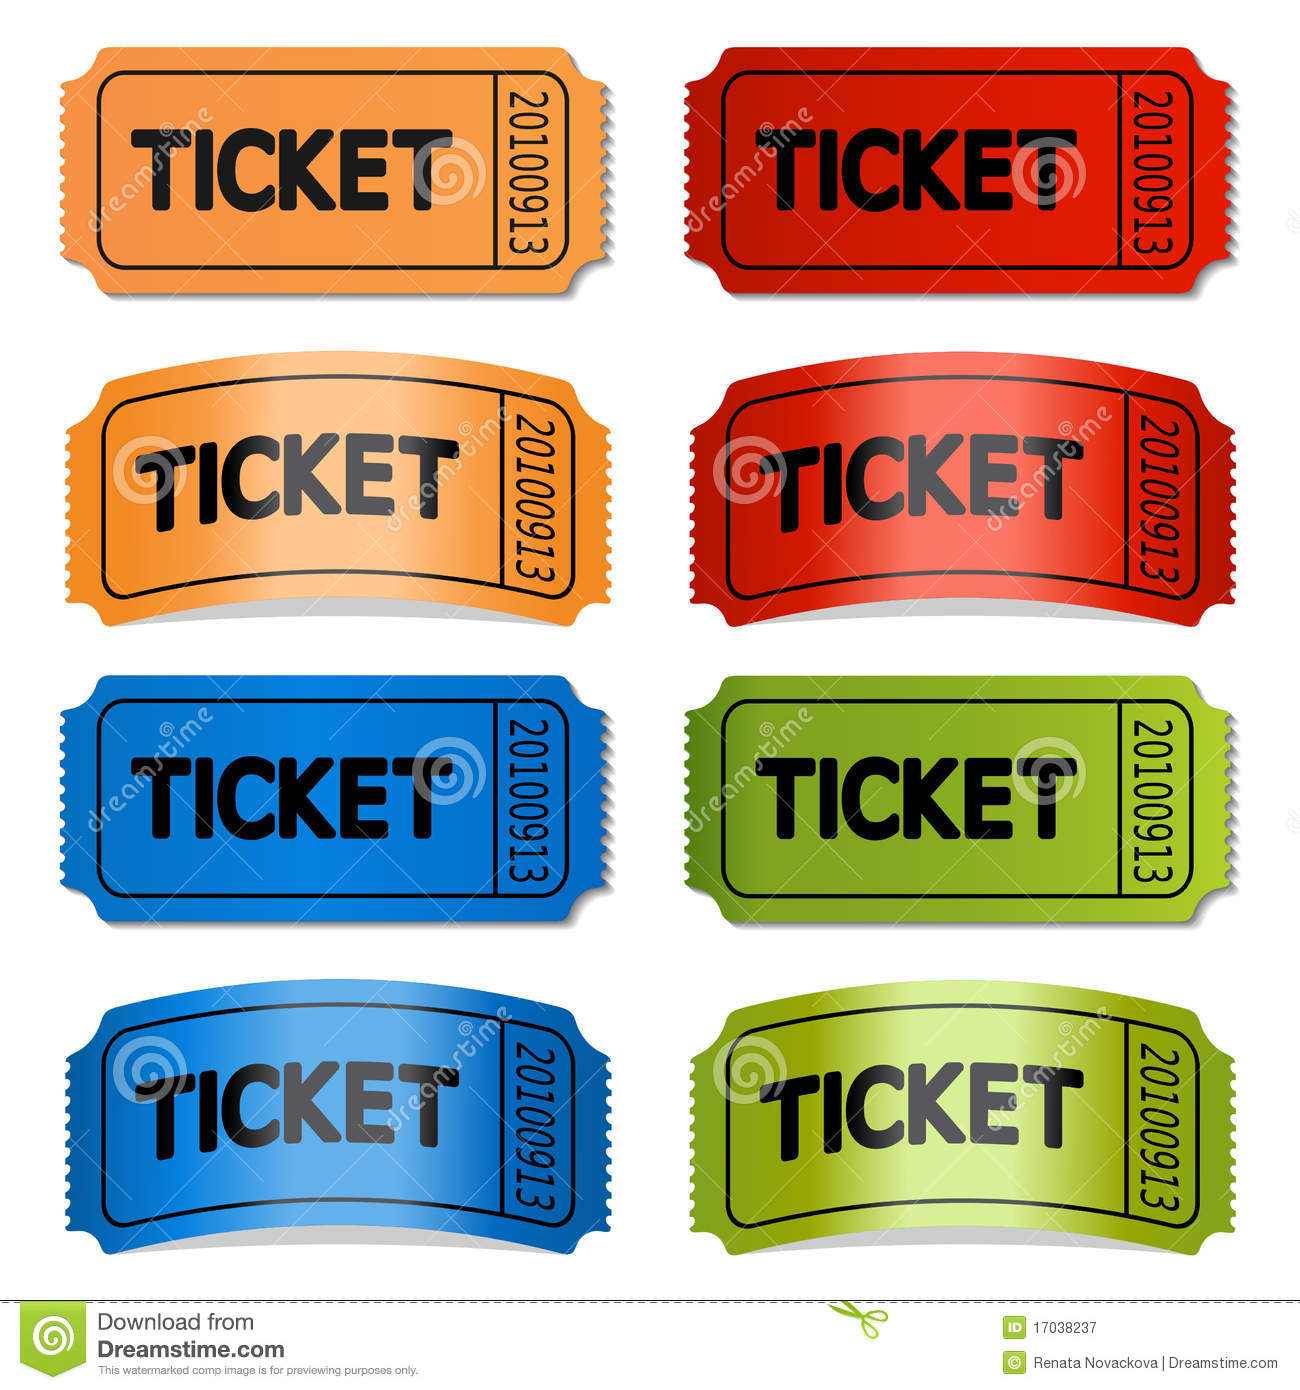 how to buy tiff tickets